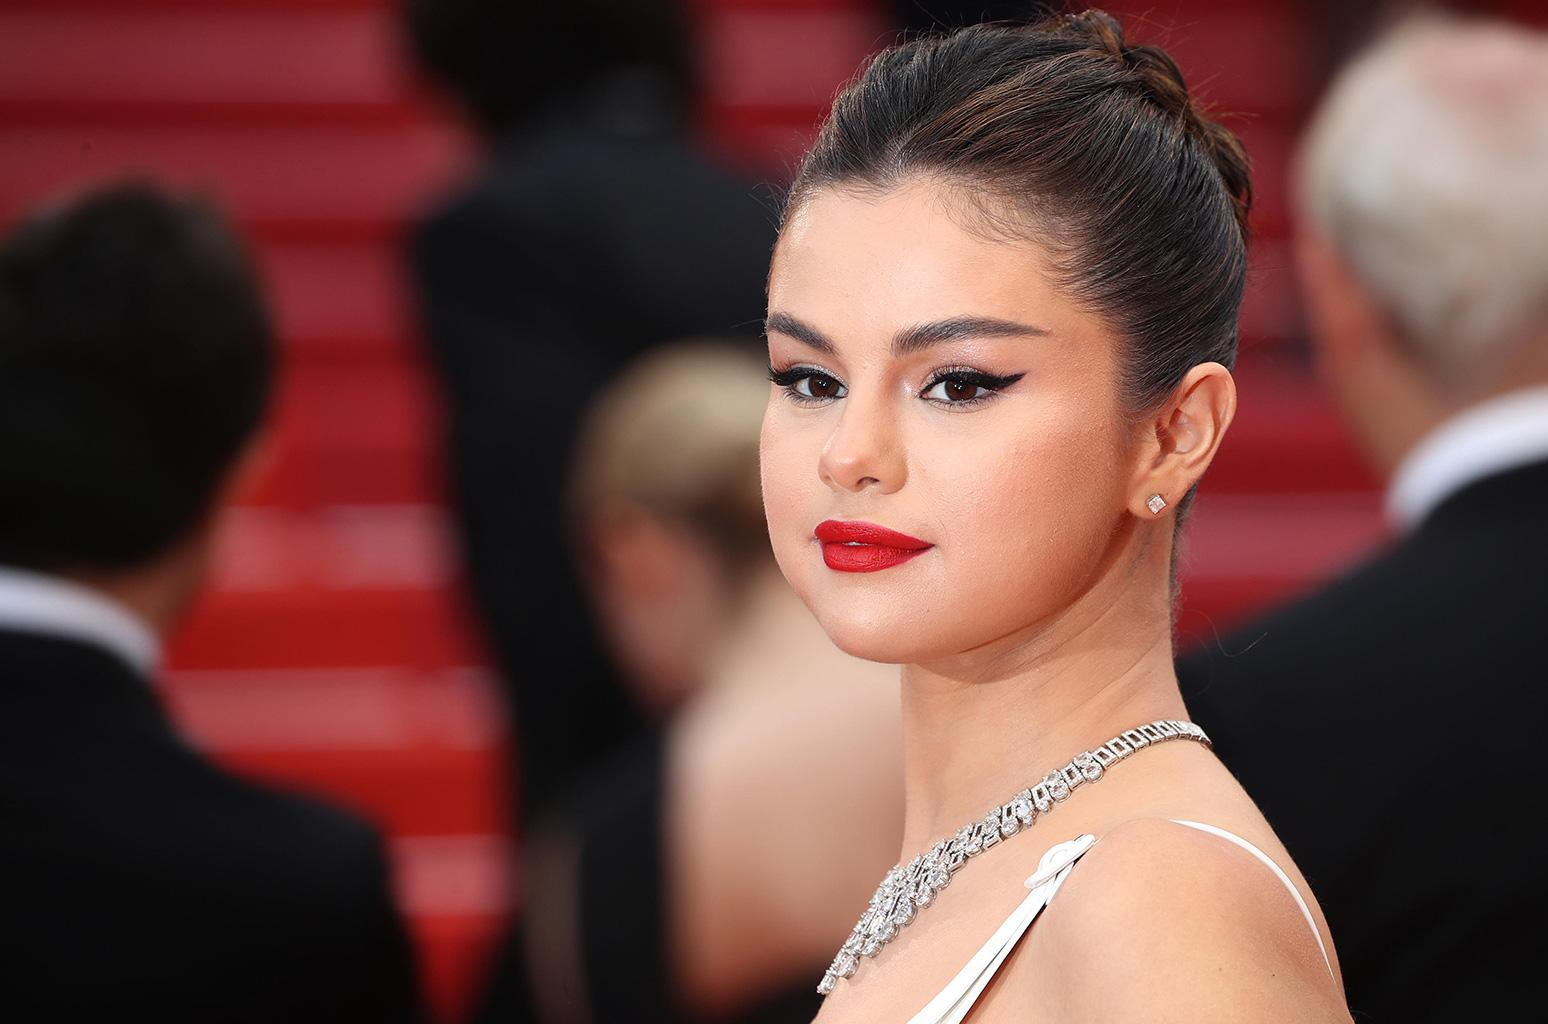 Selena Gomez Shows Off New Hairstyle After Her Ex Justin Bieber's Wedding